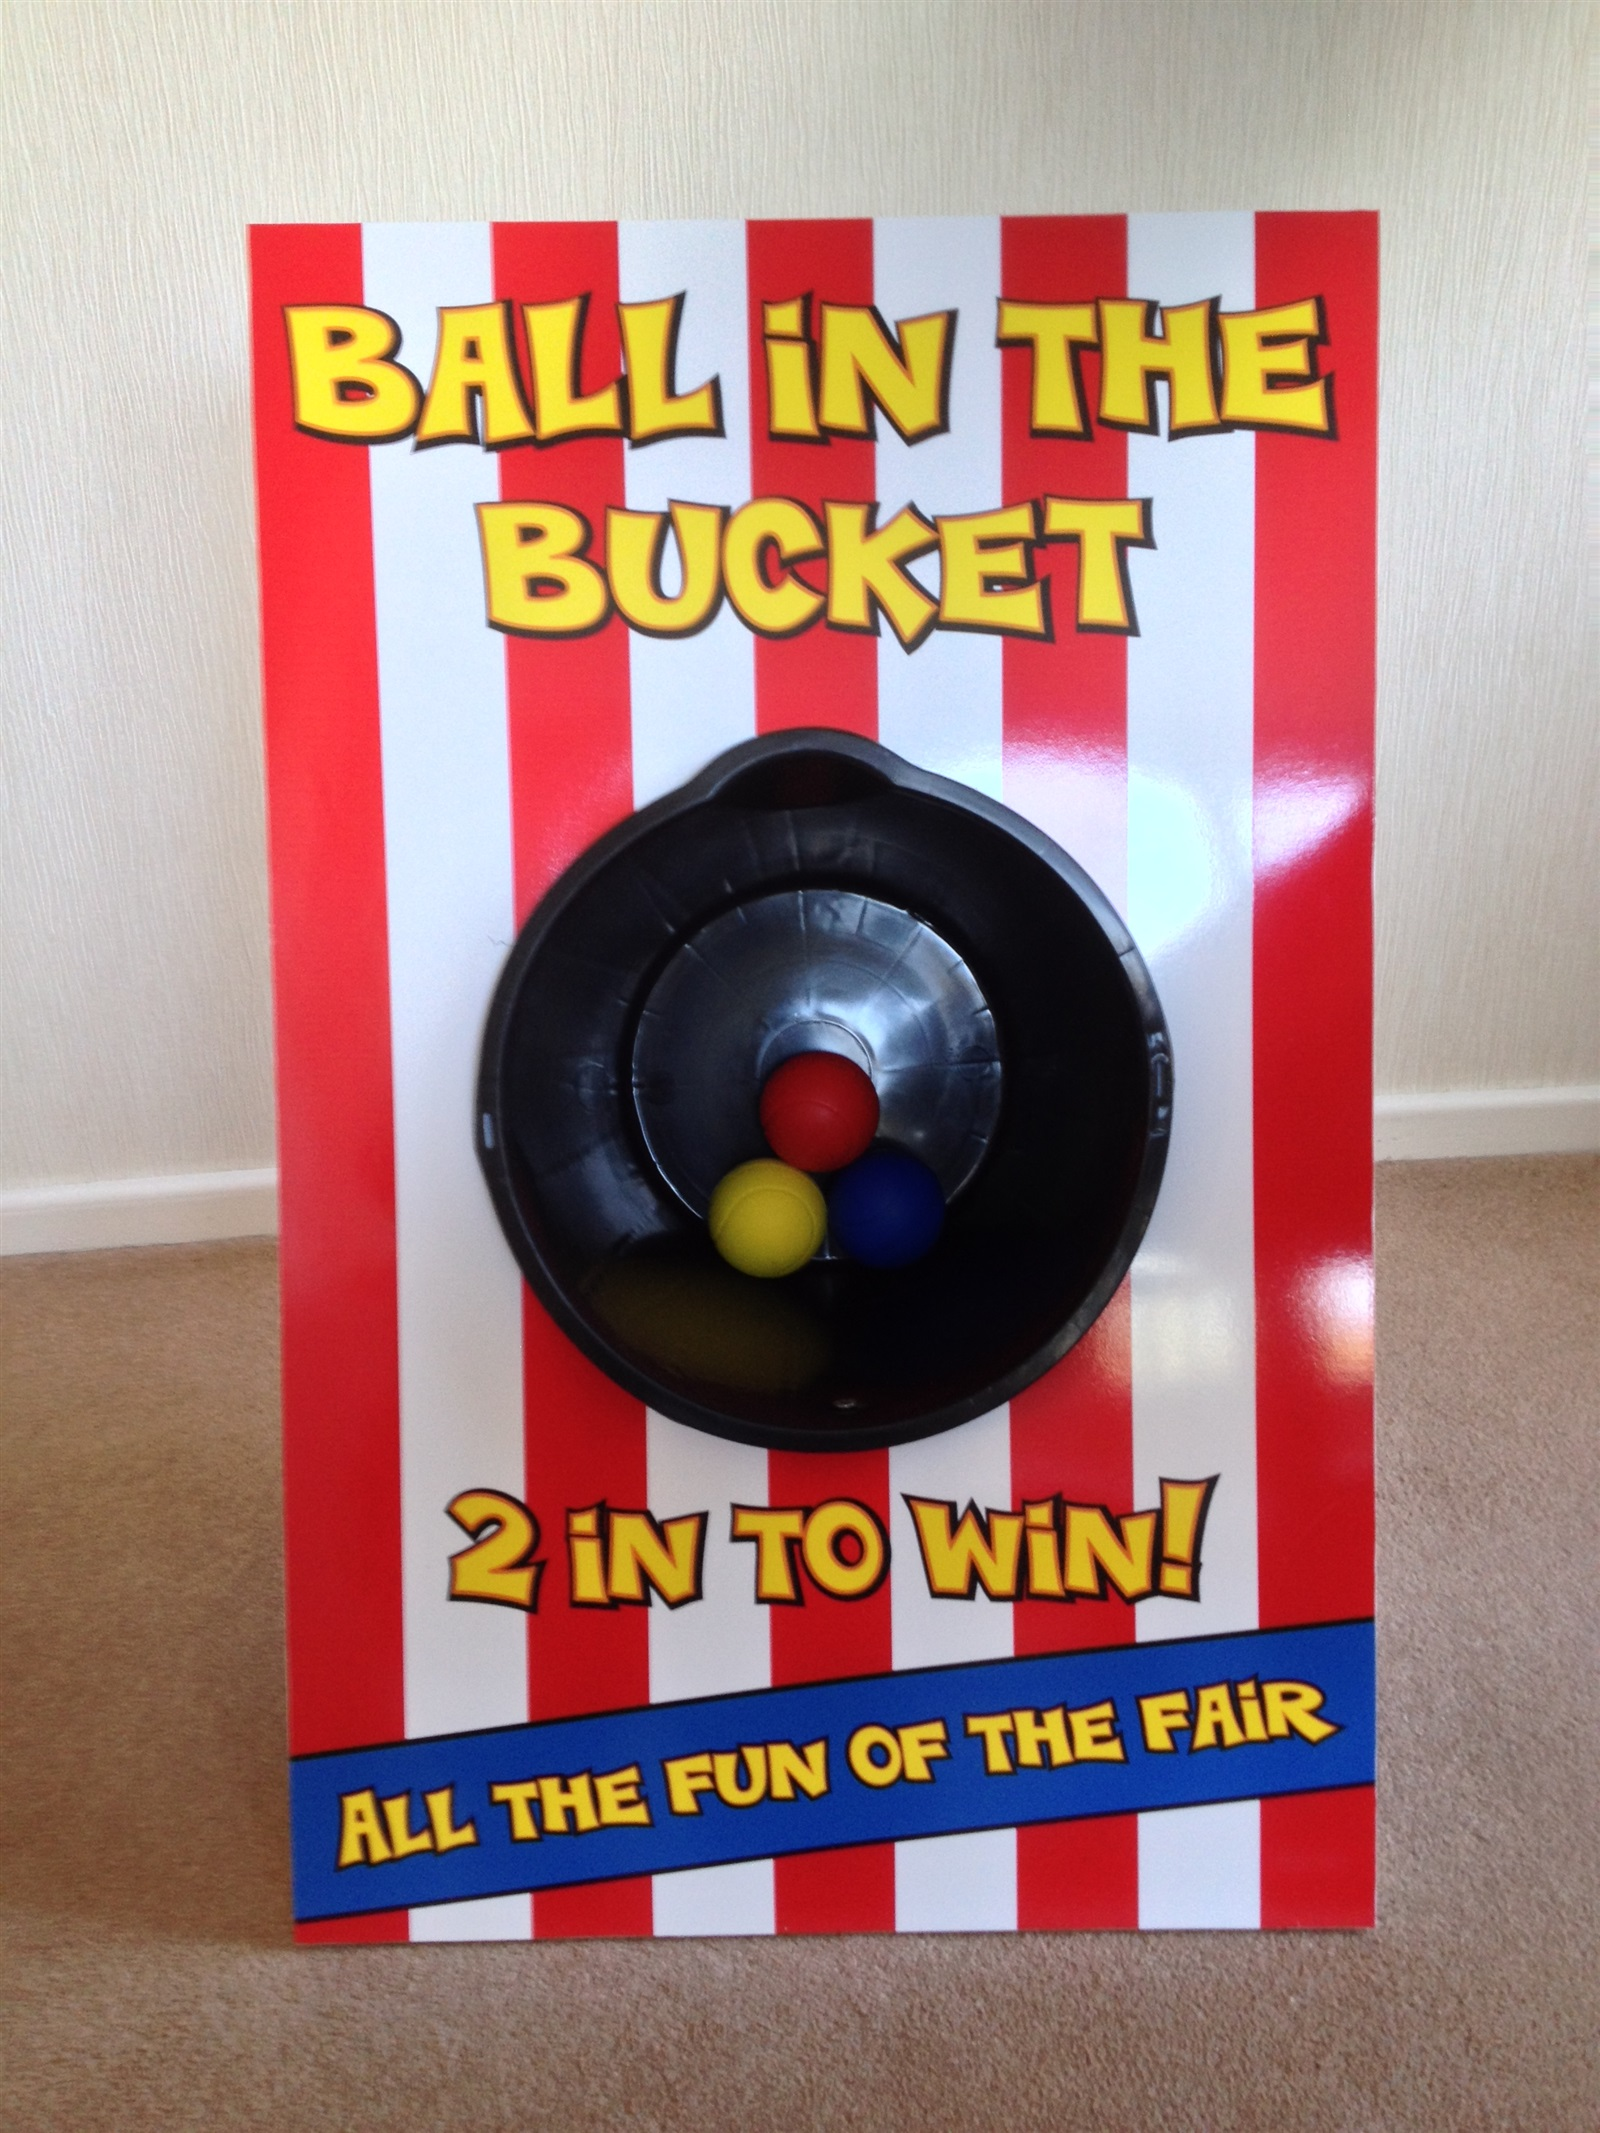 Ball in the Bucket - Rules to play Parachuting